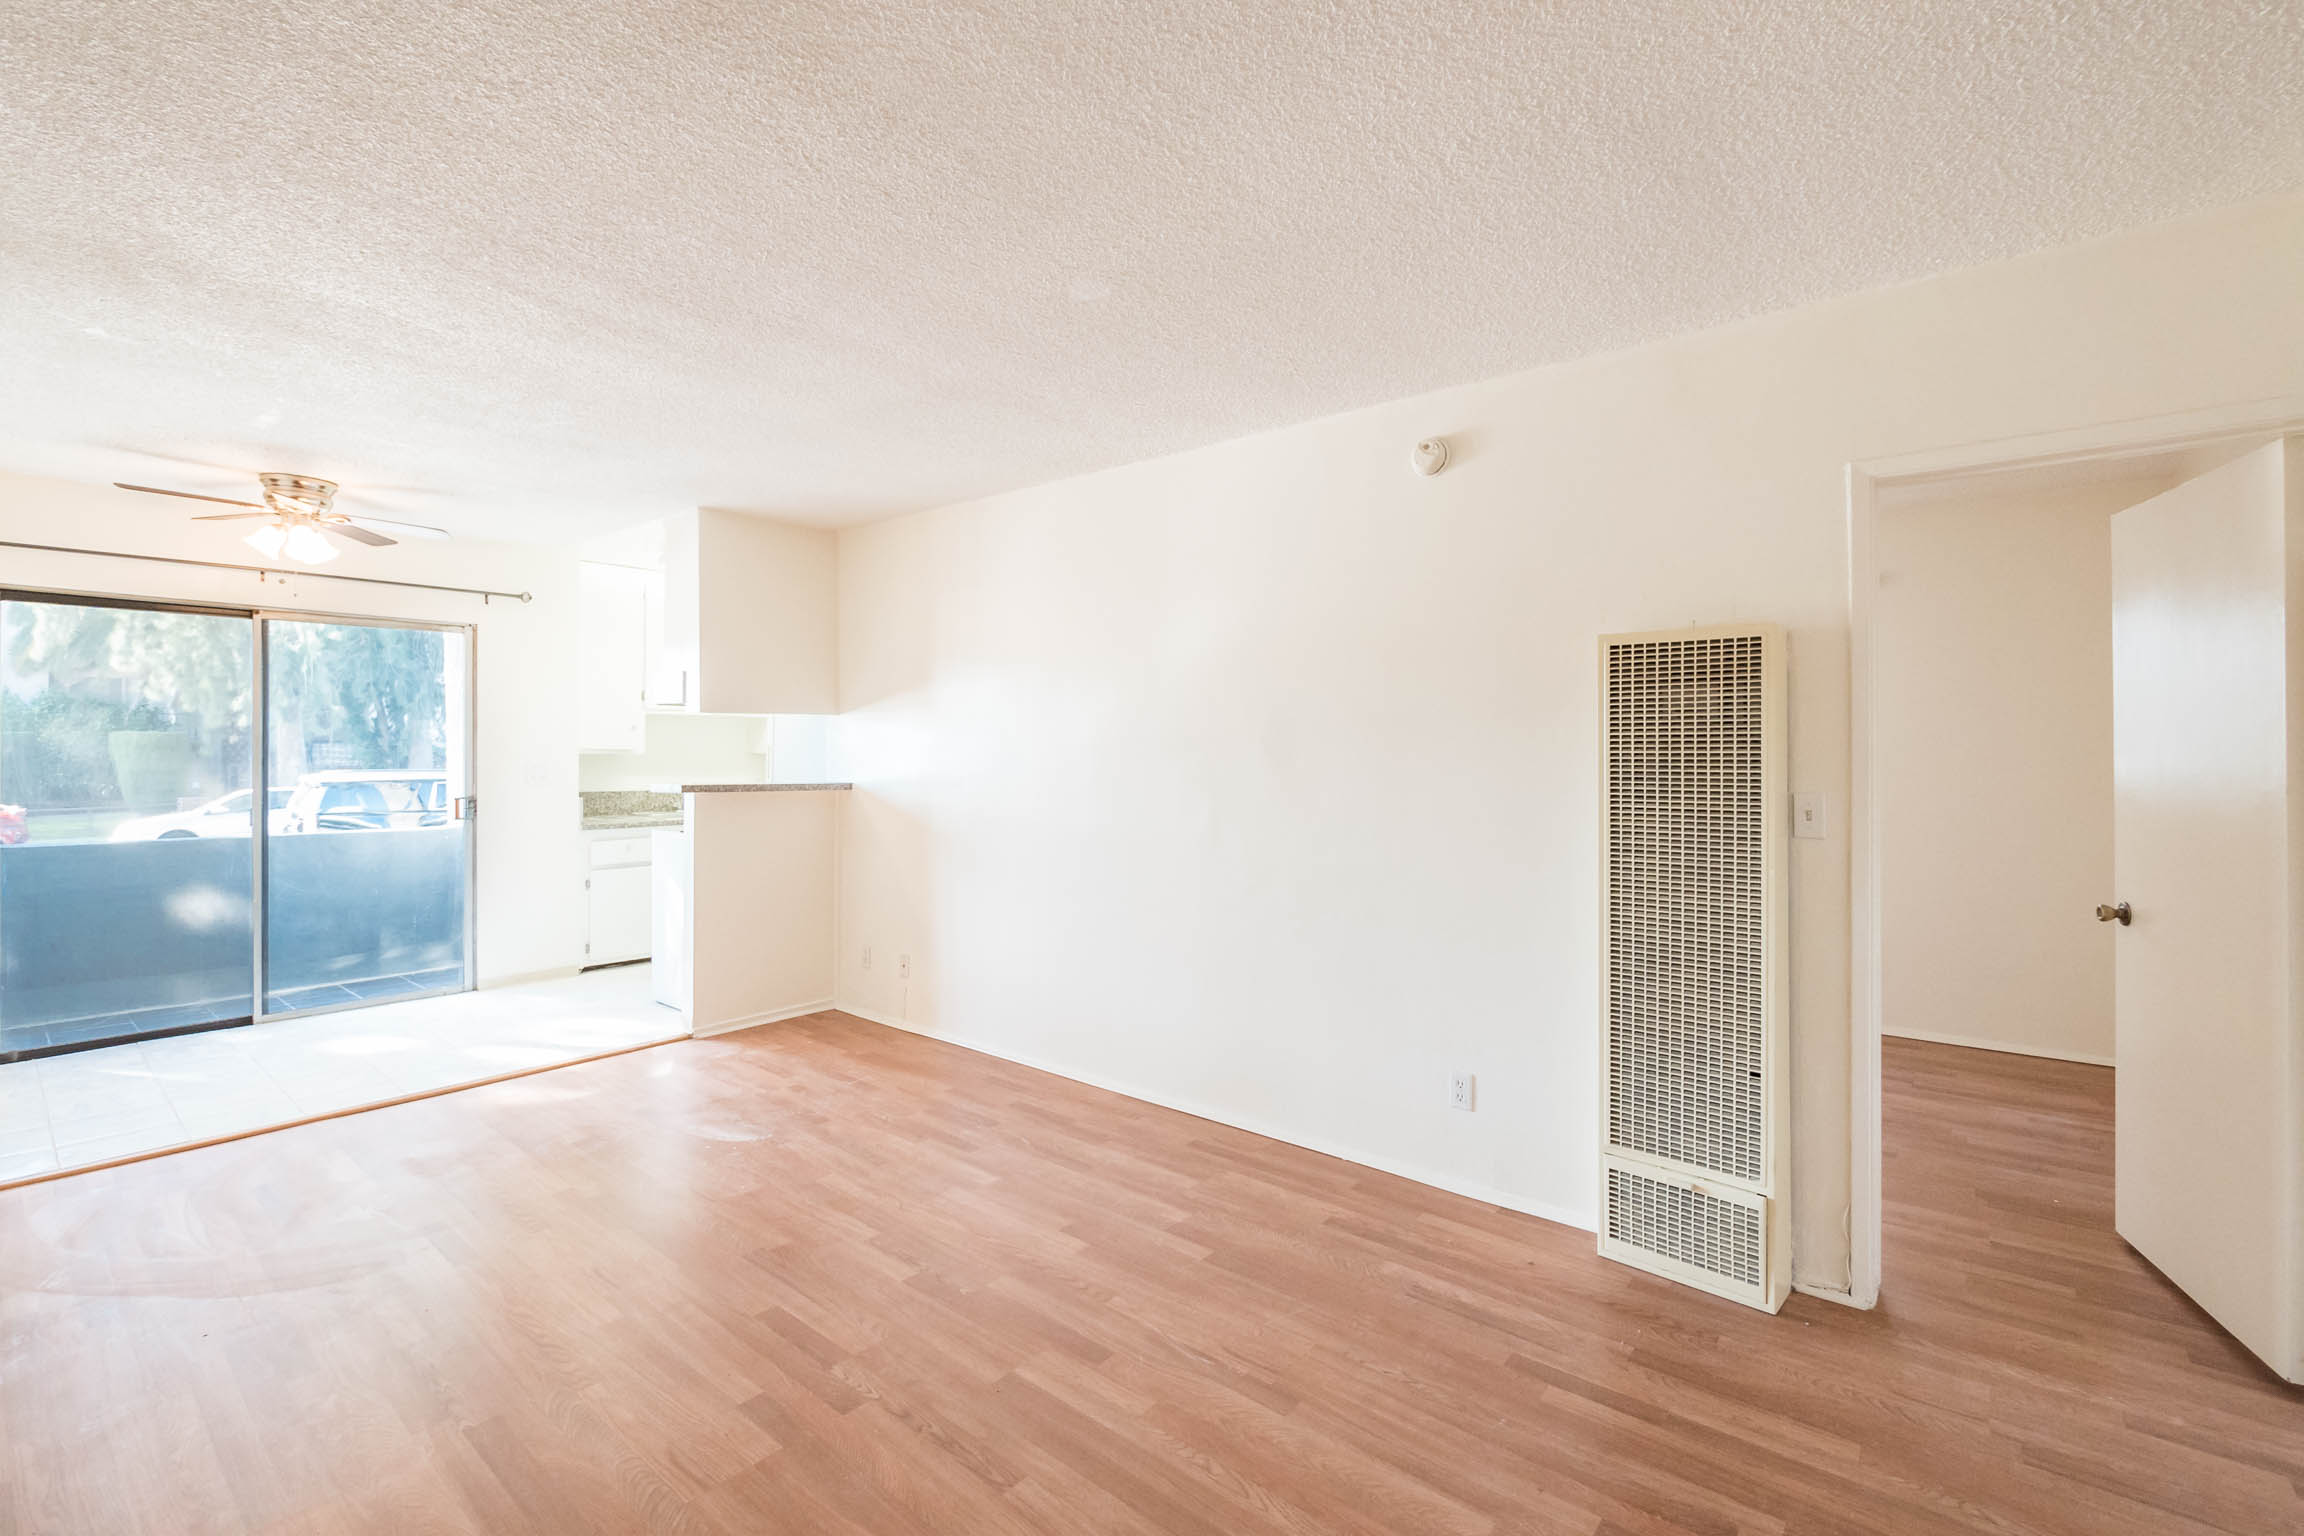 Downtown Culver-adjacent 1BD/1BA - FAB Location with Parking and Patio!